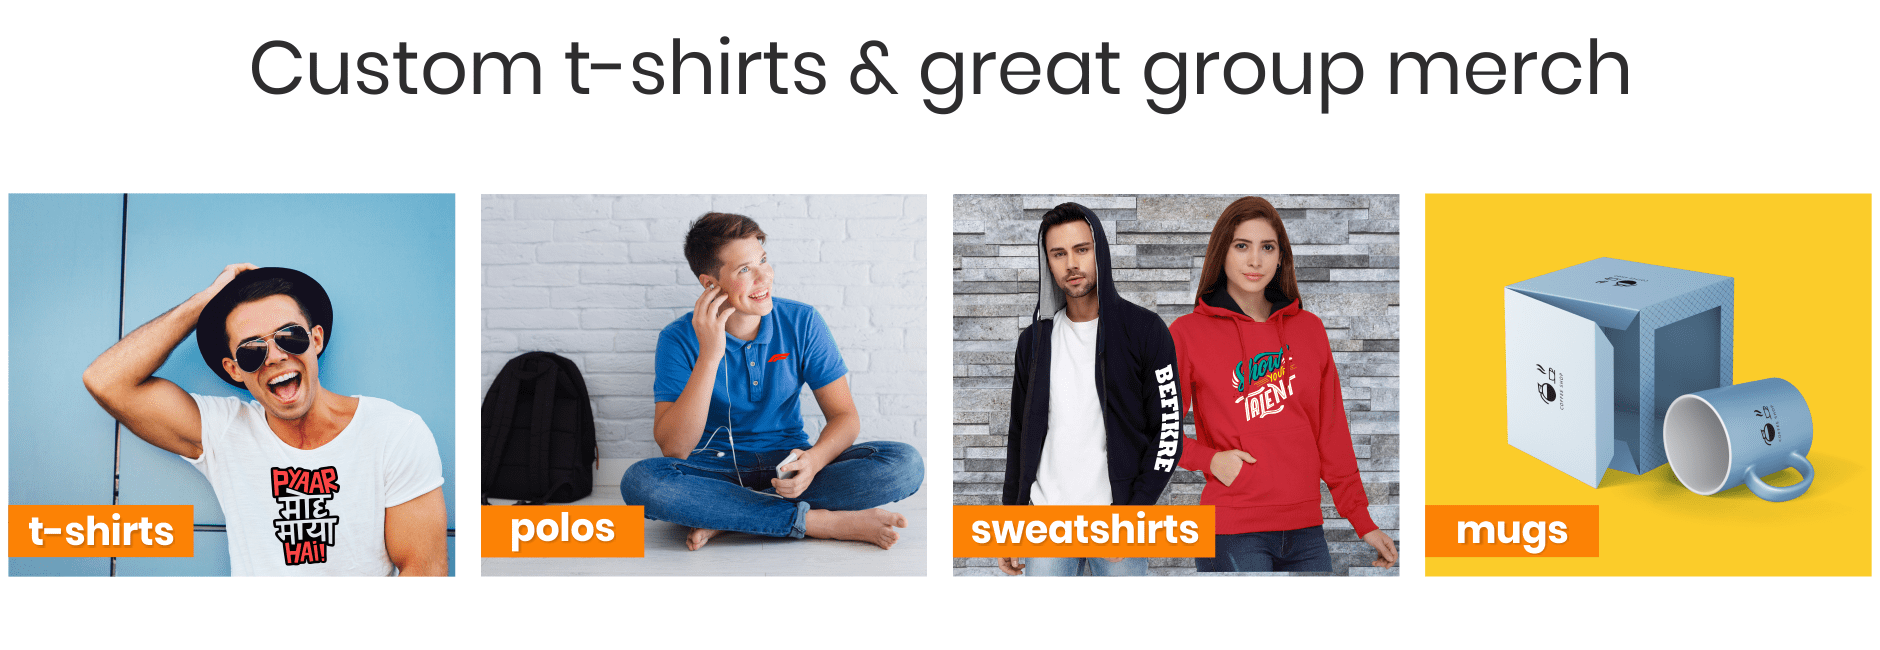 Group T-shirts